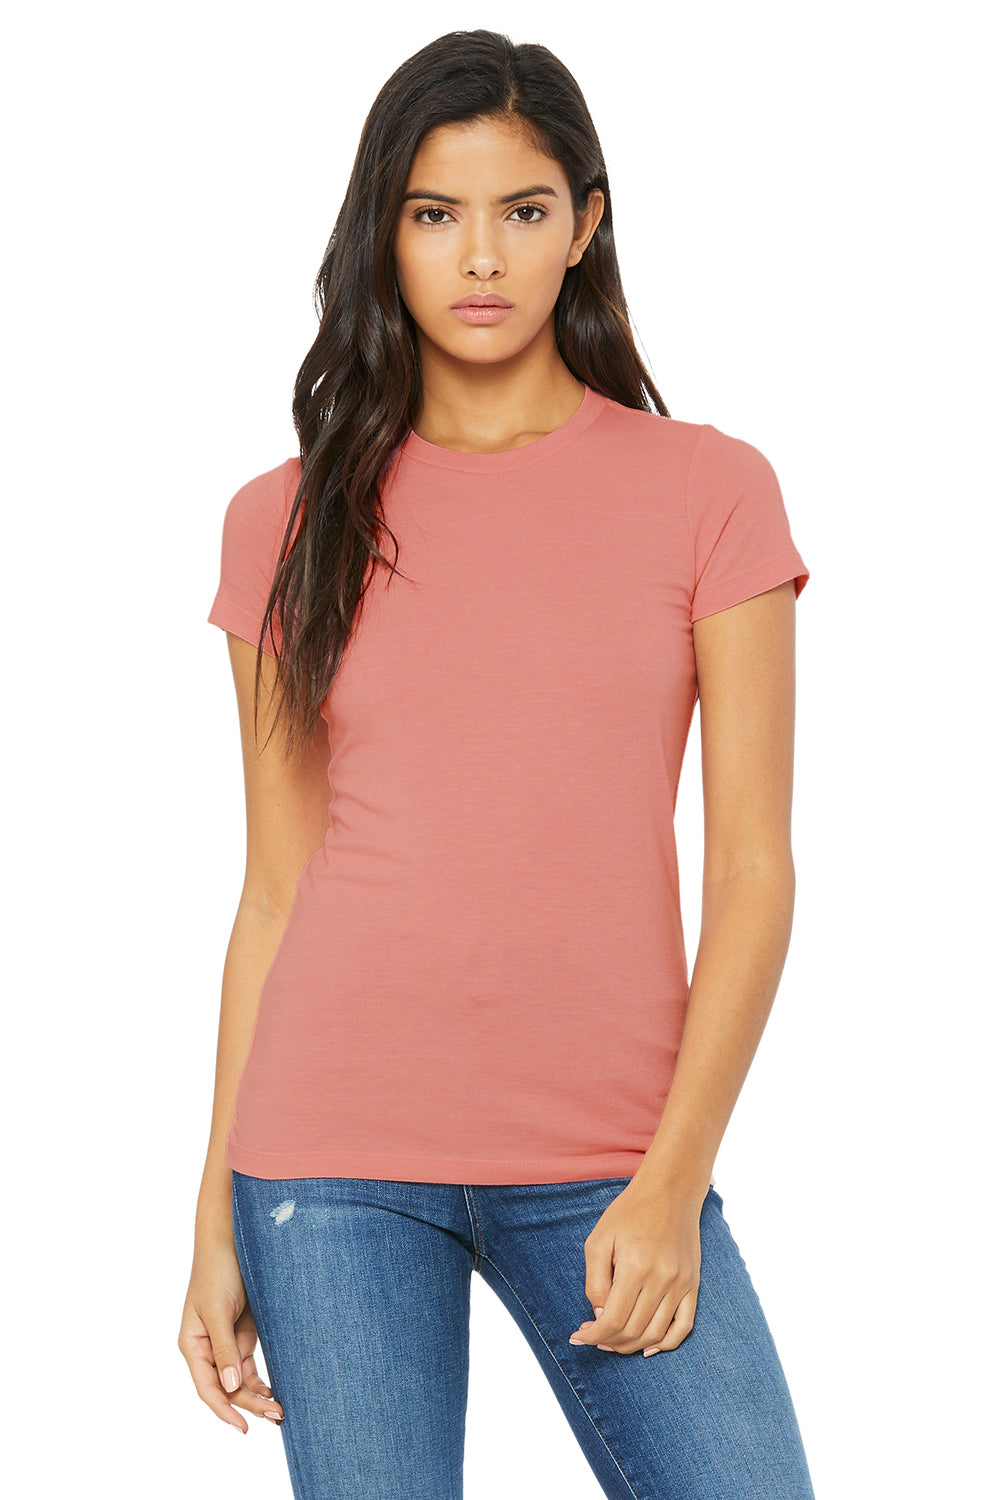 Bella + Canvas 6004 Womens The Favorite Short Sleeve Crewneck T-Shirt Heather Pink Front